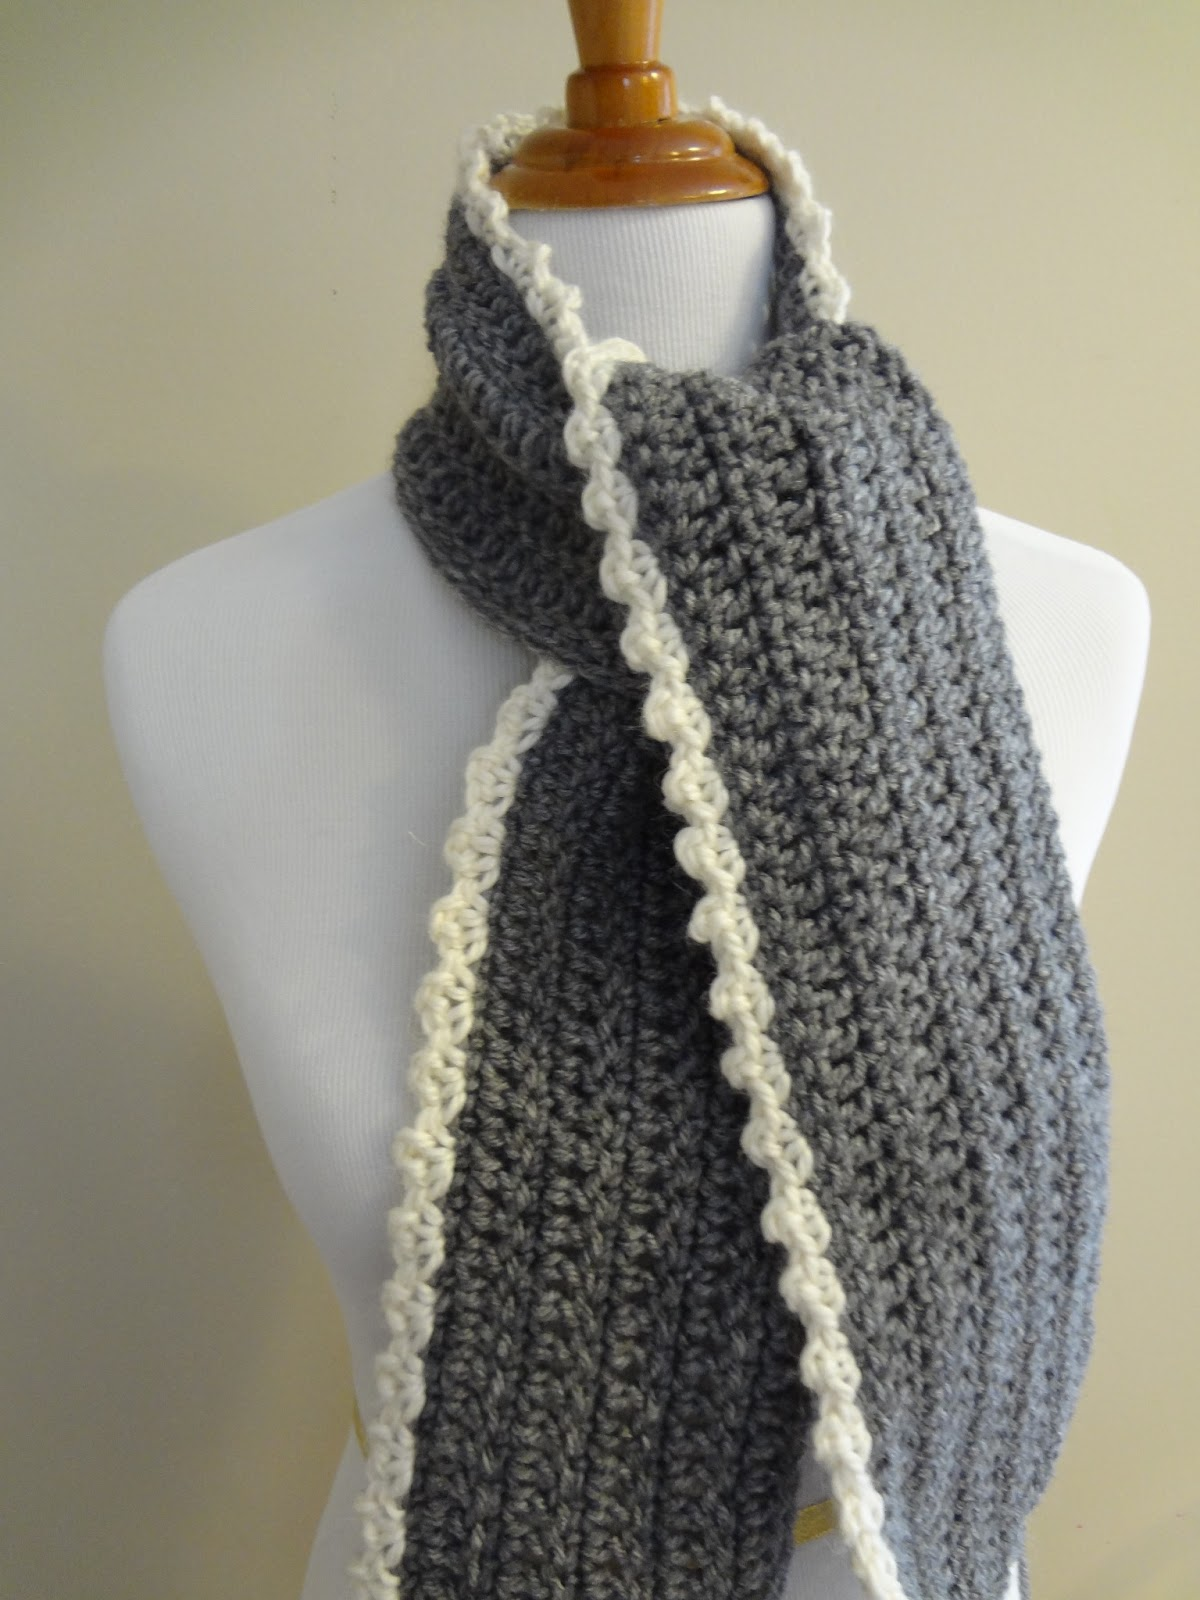 Crochet Stitches Good For Scarves : Fiber Flux: Free Crochet Pattern...Ingrid Scarf